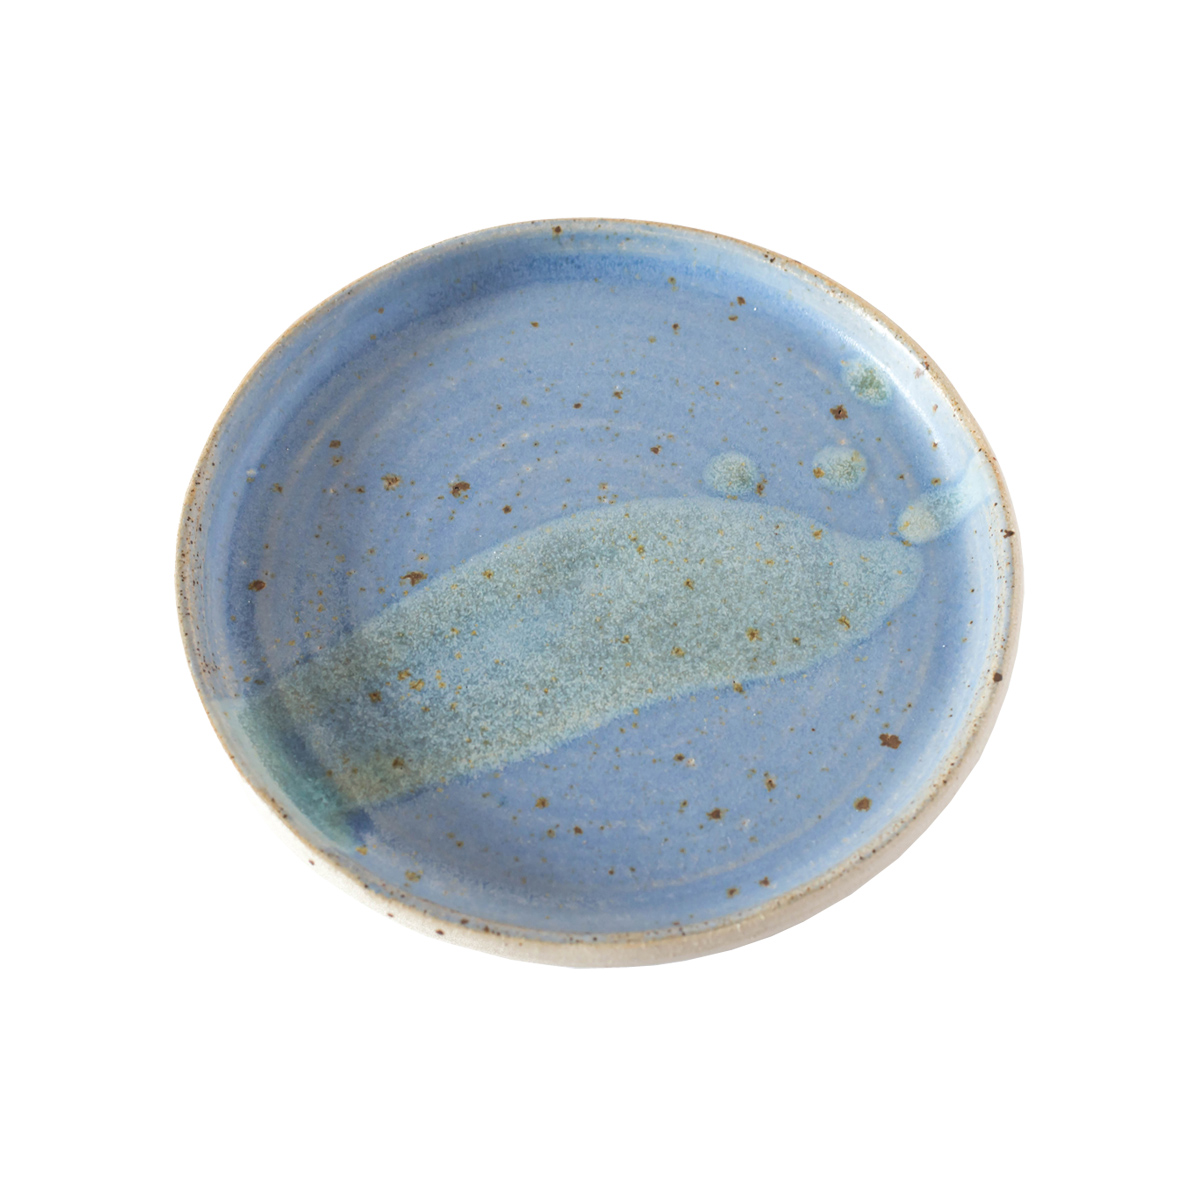 libby-ballard-speckled-side-plate